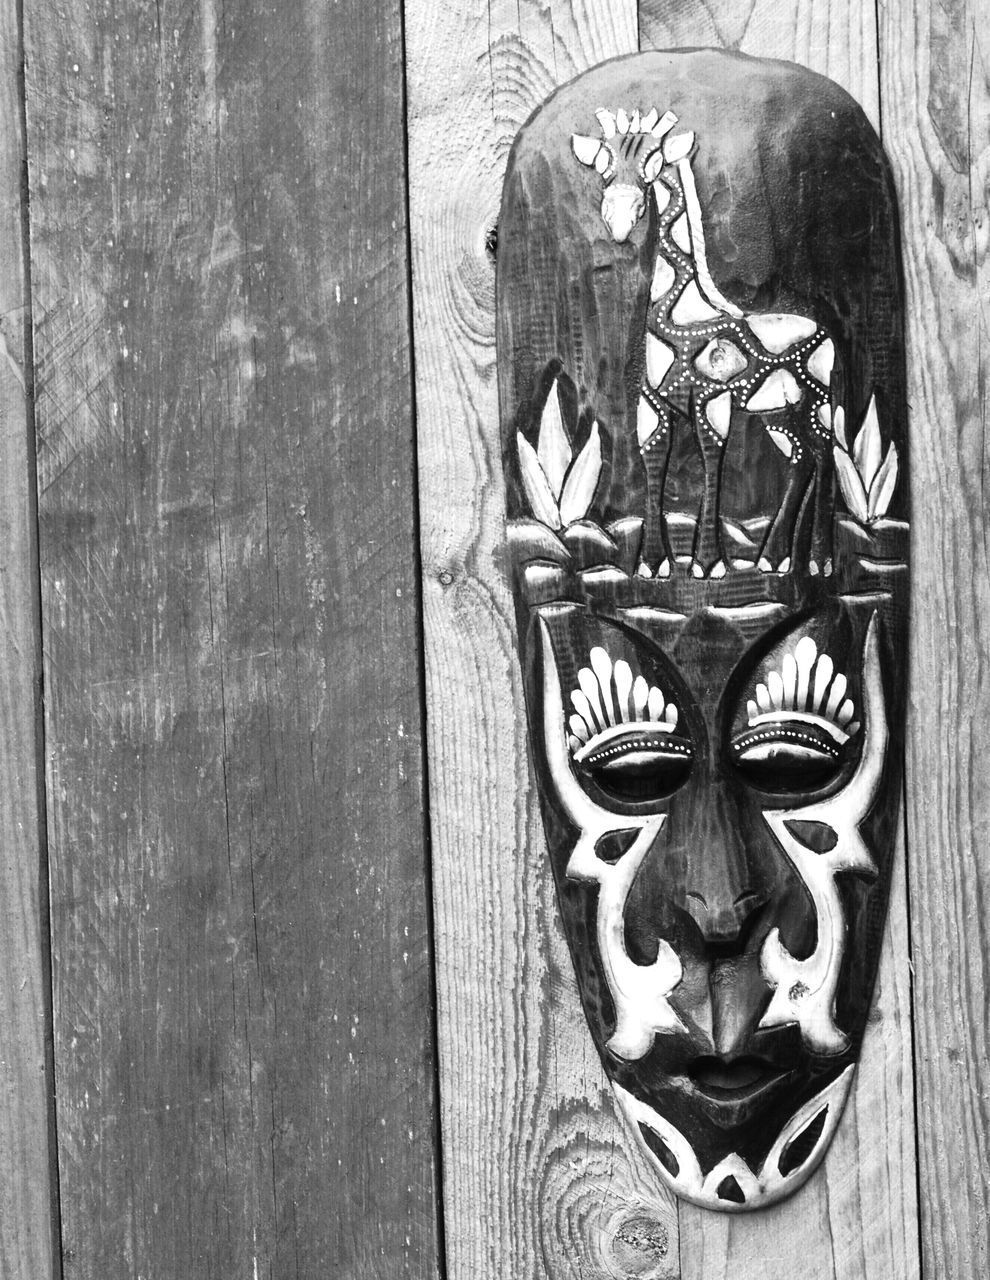 CLOSE-UP OF CARVING ON DOOR